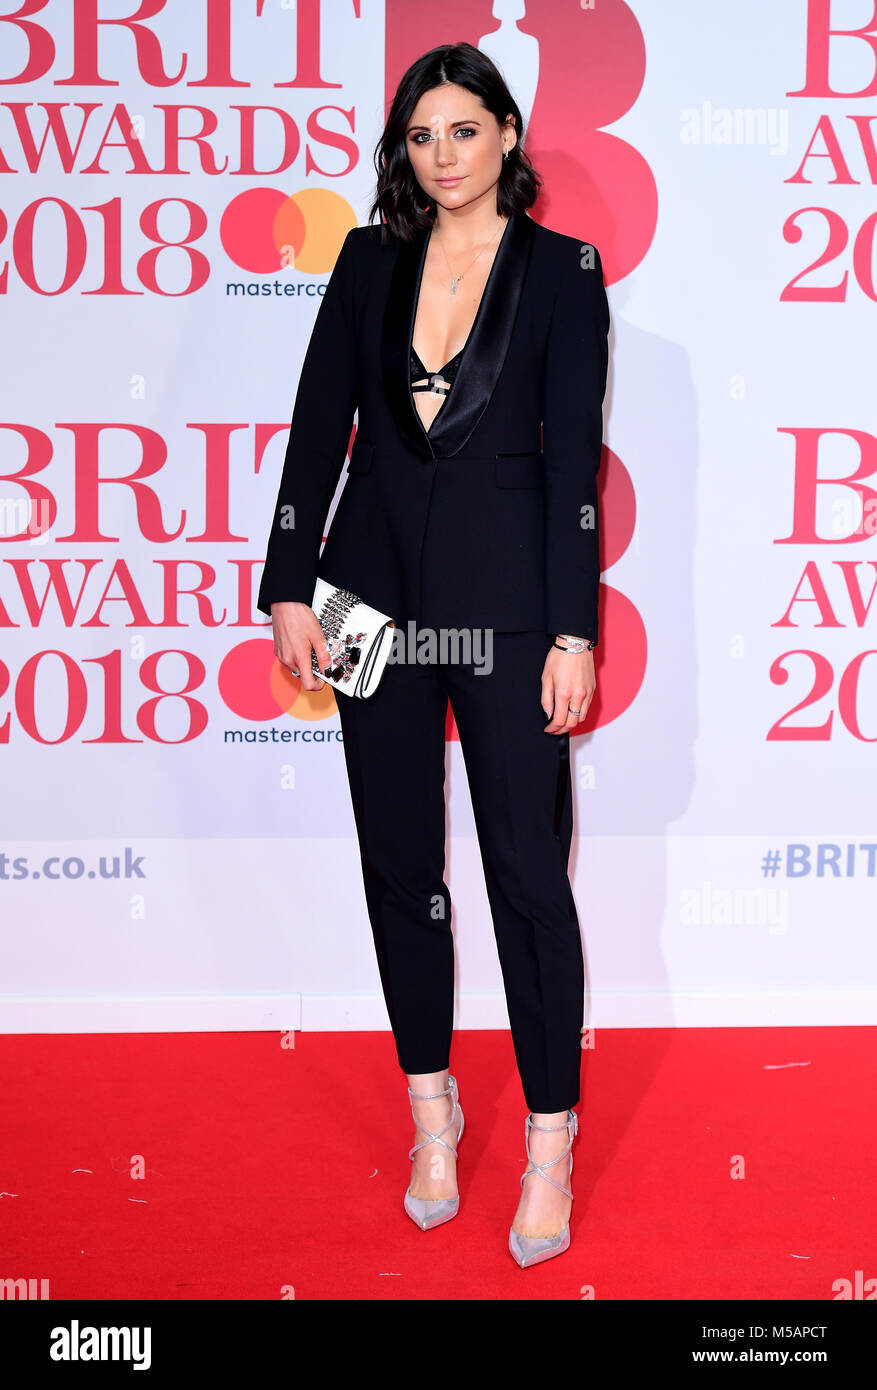 Lilah Parsons attending the Brit Awards at the O2 Arena, London. - Stock Image